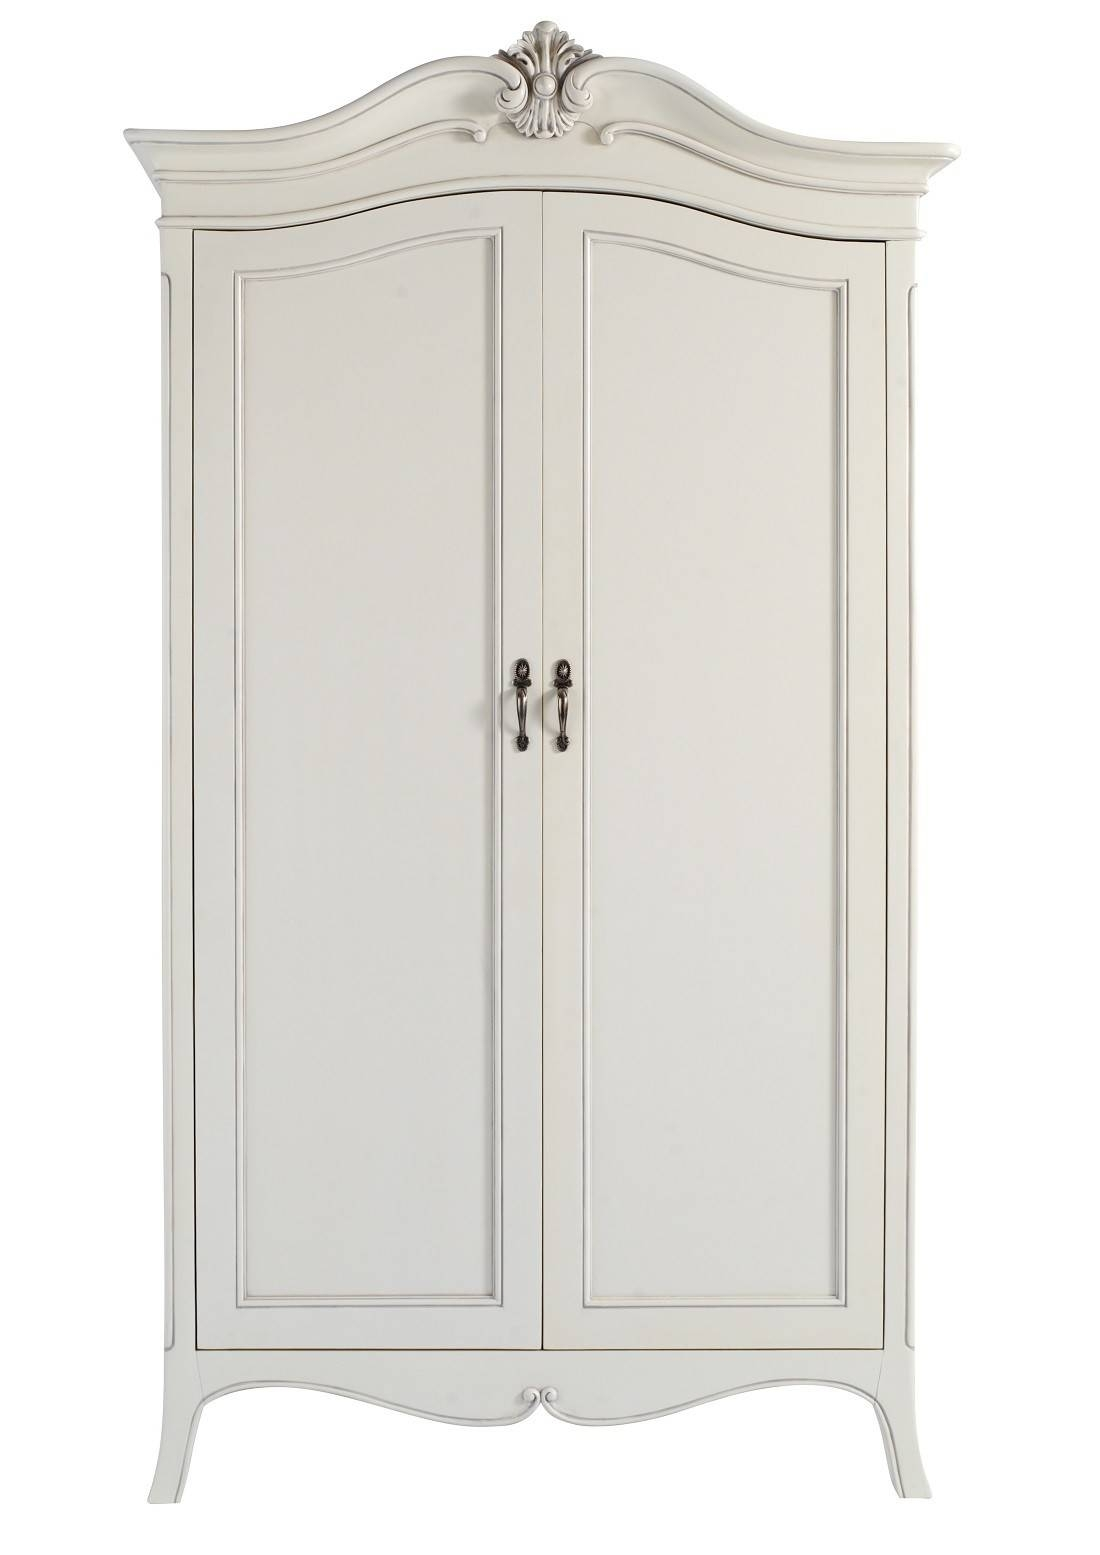 Louis French Ivory Painted 2 Door Double Wardrobe | Oak Furniture Uk with regard to French Style Fitted Wardrobes (Image 14 of 15)